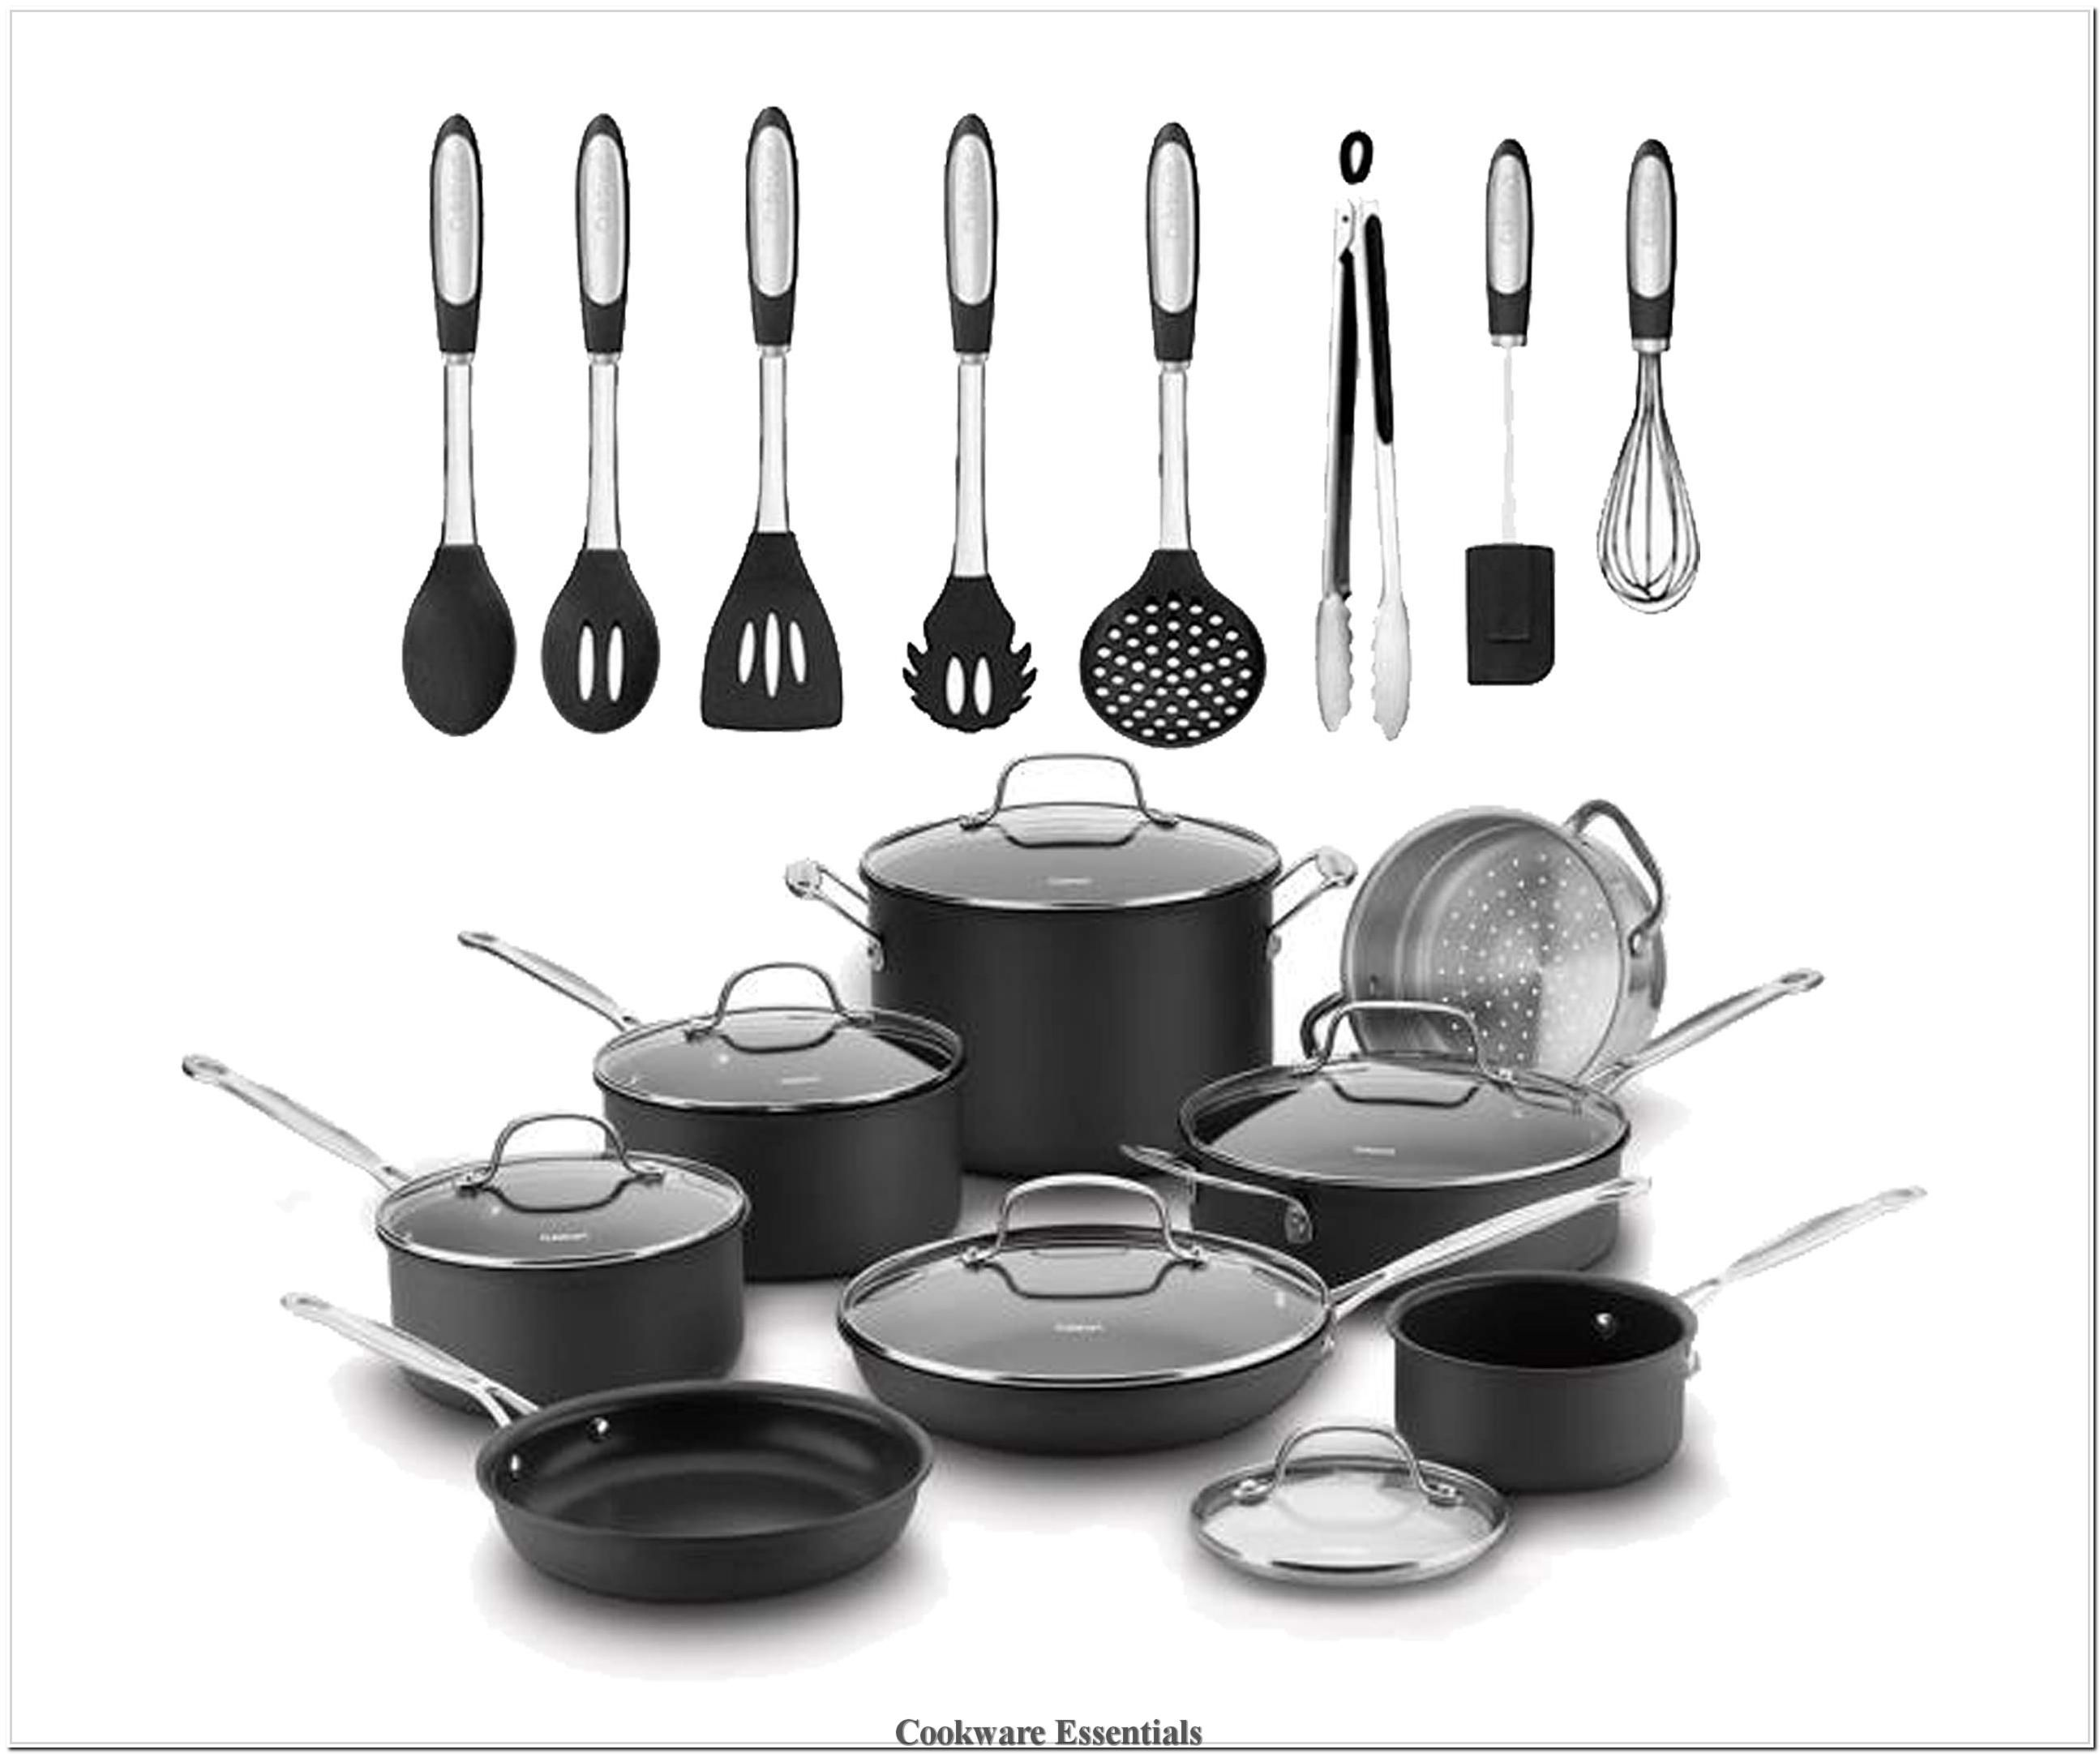 Cuisinart Chef S Classic 14 Piece Hard Anodized Cookware Set With Non Stick Cooking Surface A In 2020 Hard Anodized Cookware Silicone Kitchen Tools Cookware Essentials